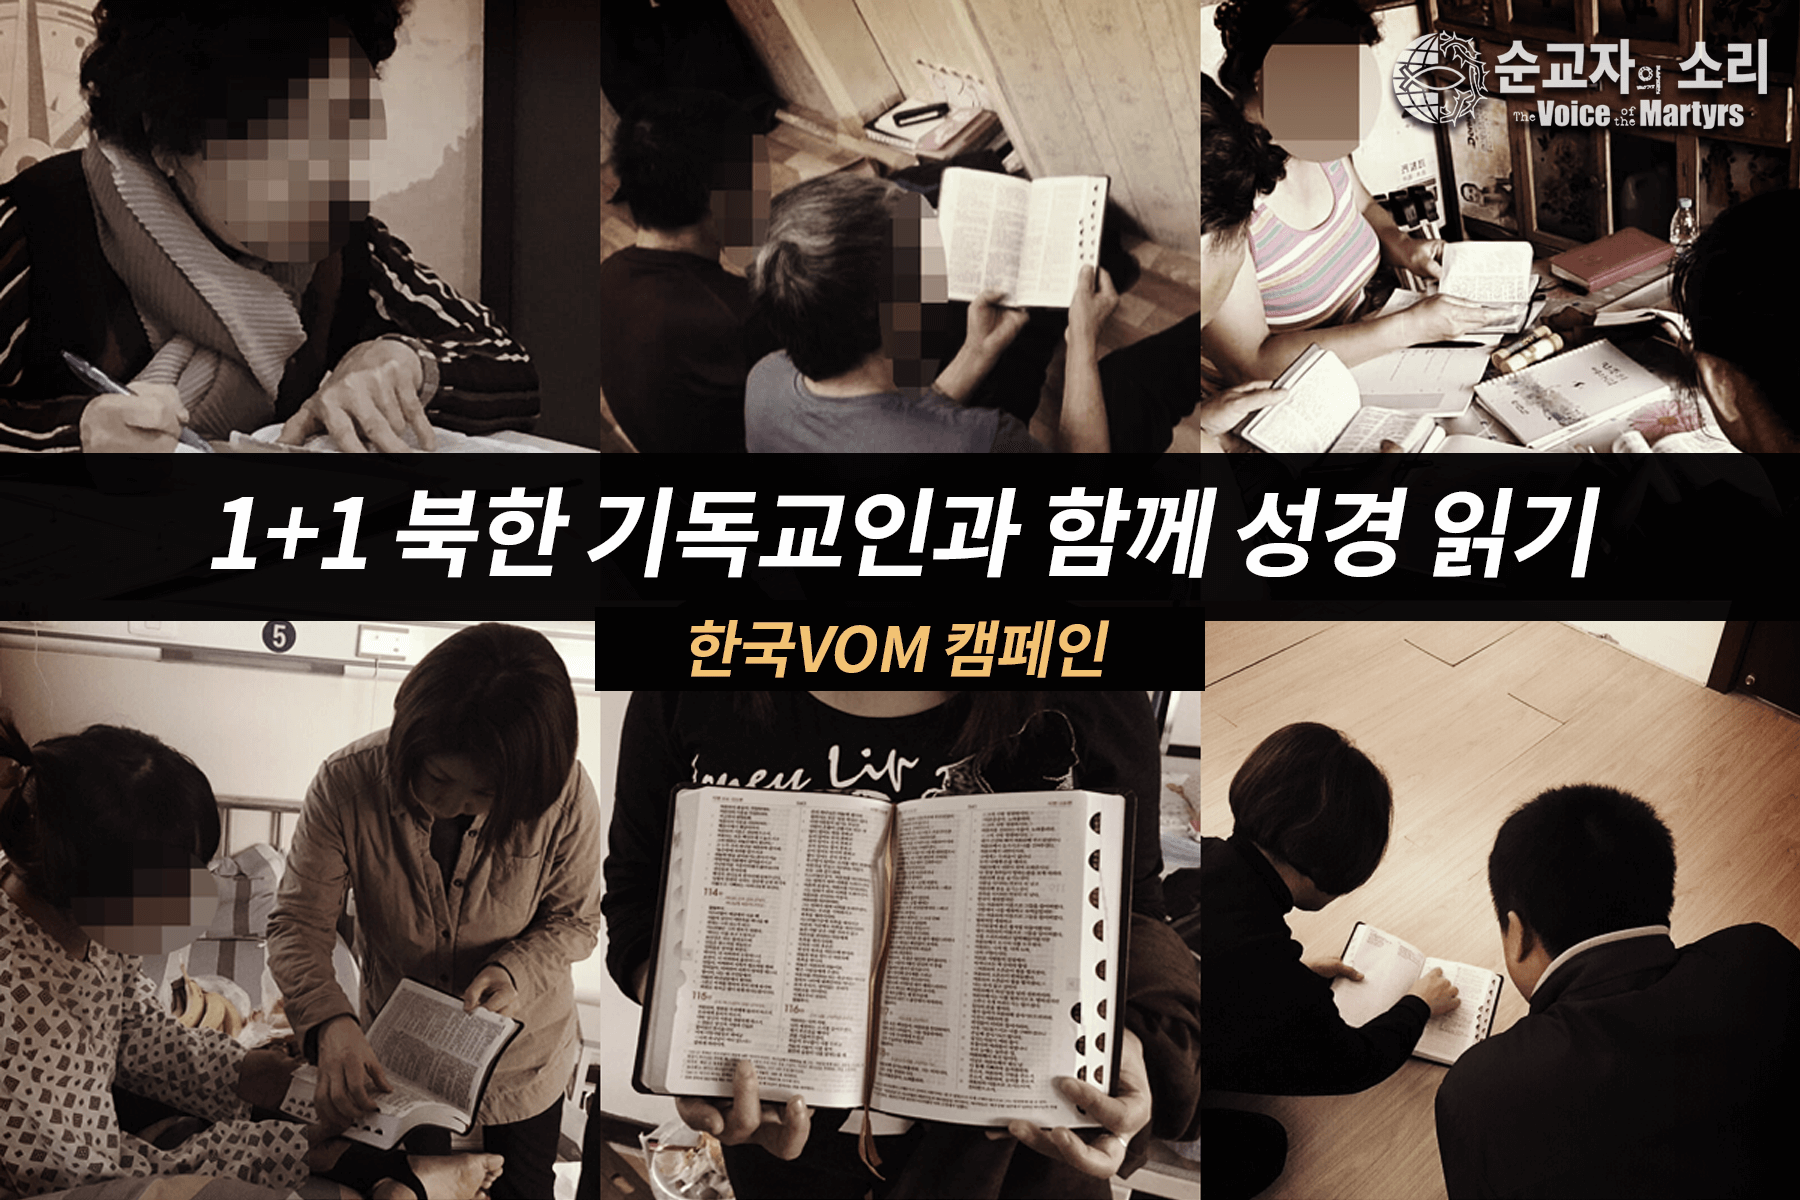 Voice of the Martyrs Korea seeks to reverse decline in Bible reading among South Korean Christians through special Bible reading campaign with North Korean Christians